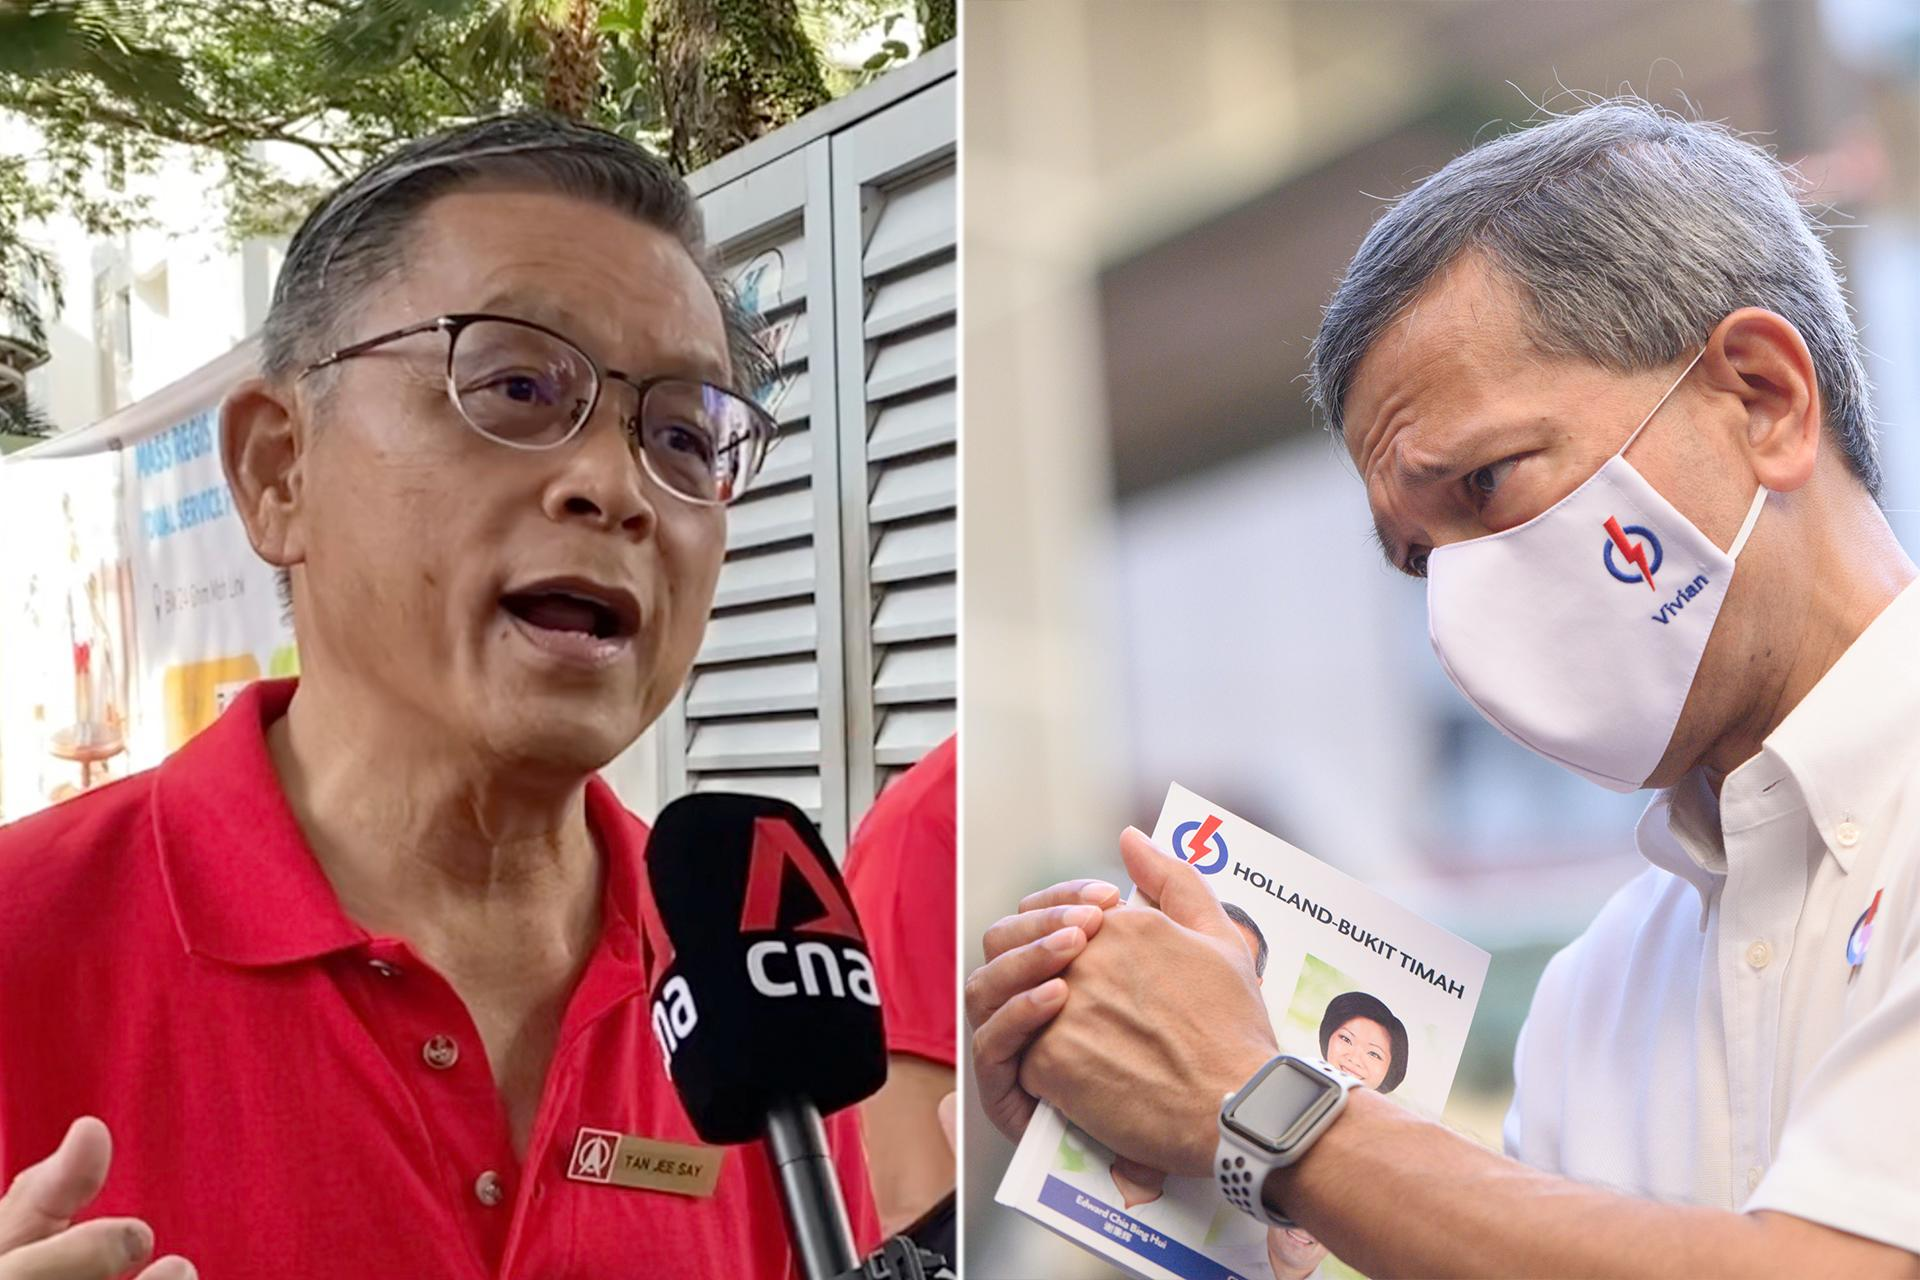 PAP's Vivian Balakrishnan a 'serial over-spender' with 'poor track record' as MP: SDP Holland-Bukit Timah candidates